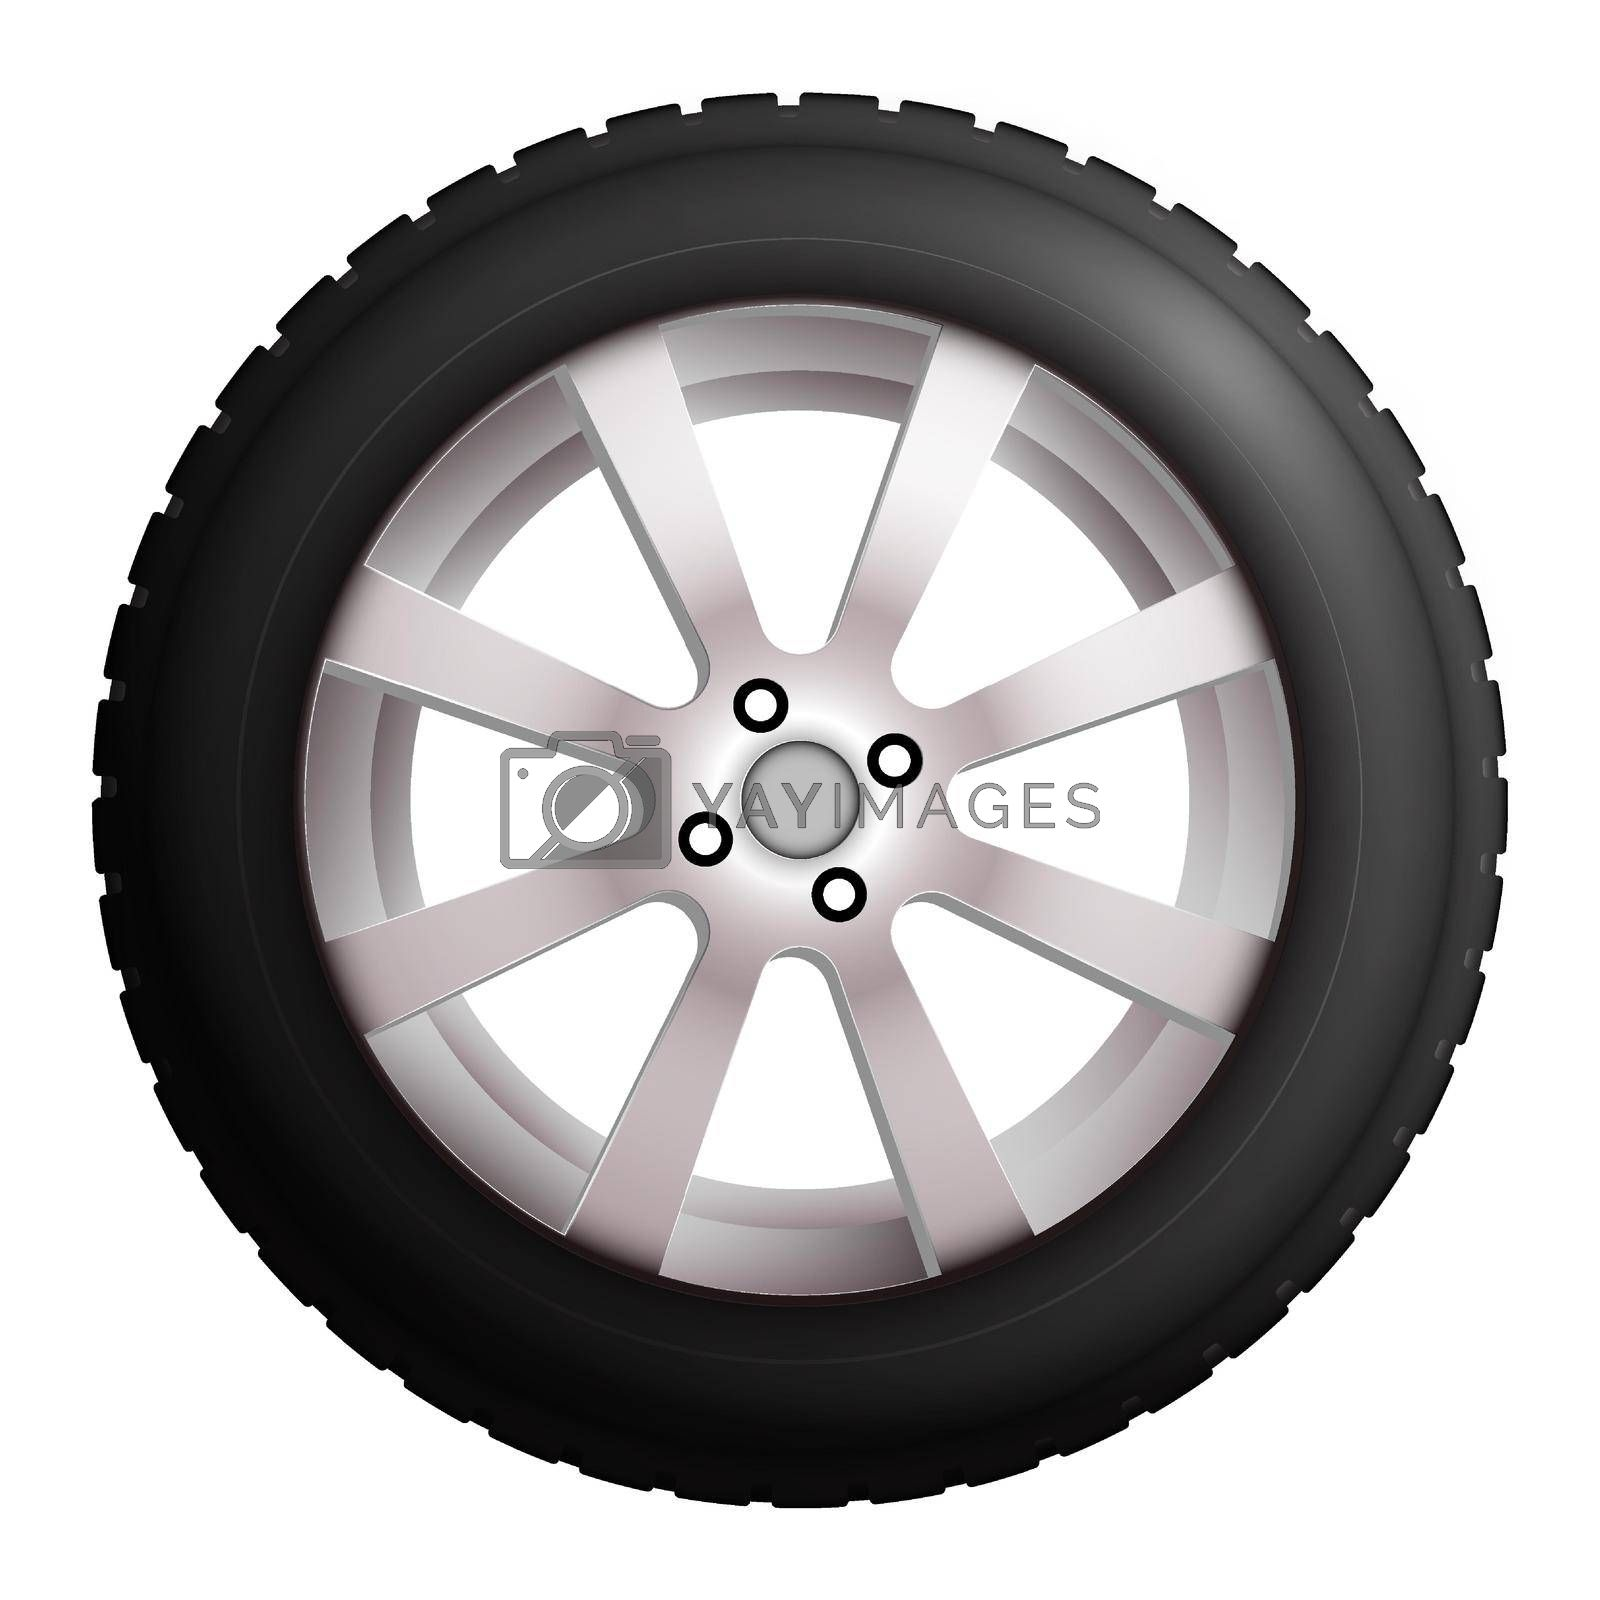 wheel with tire and winter rubber tread. Winter tires for the car. Driving on slippery road. Driving safety. Realistic vector by RNko